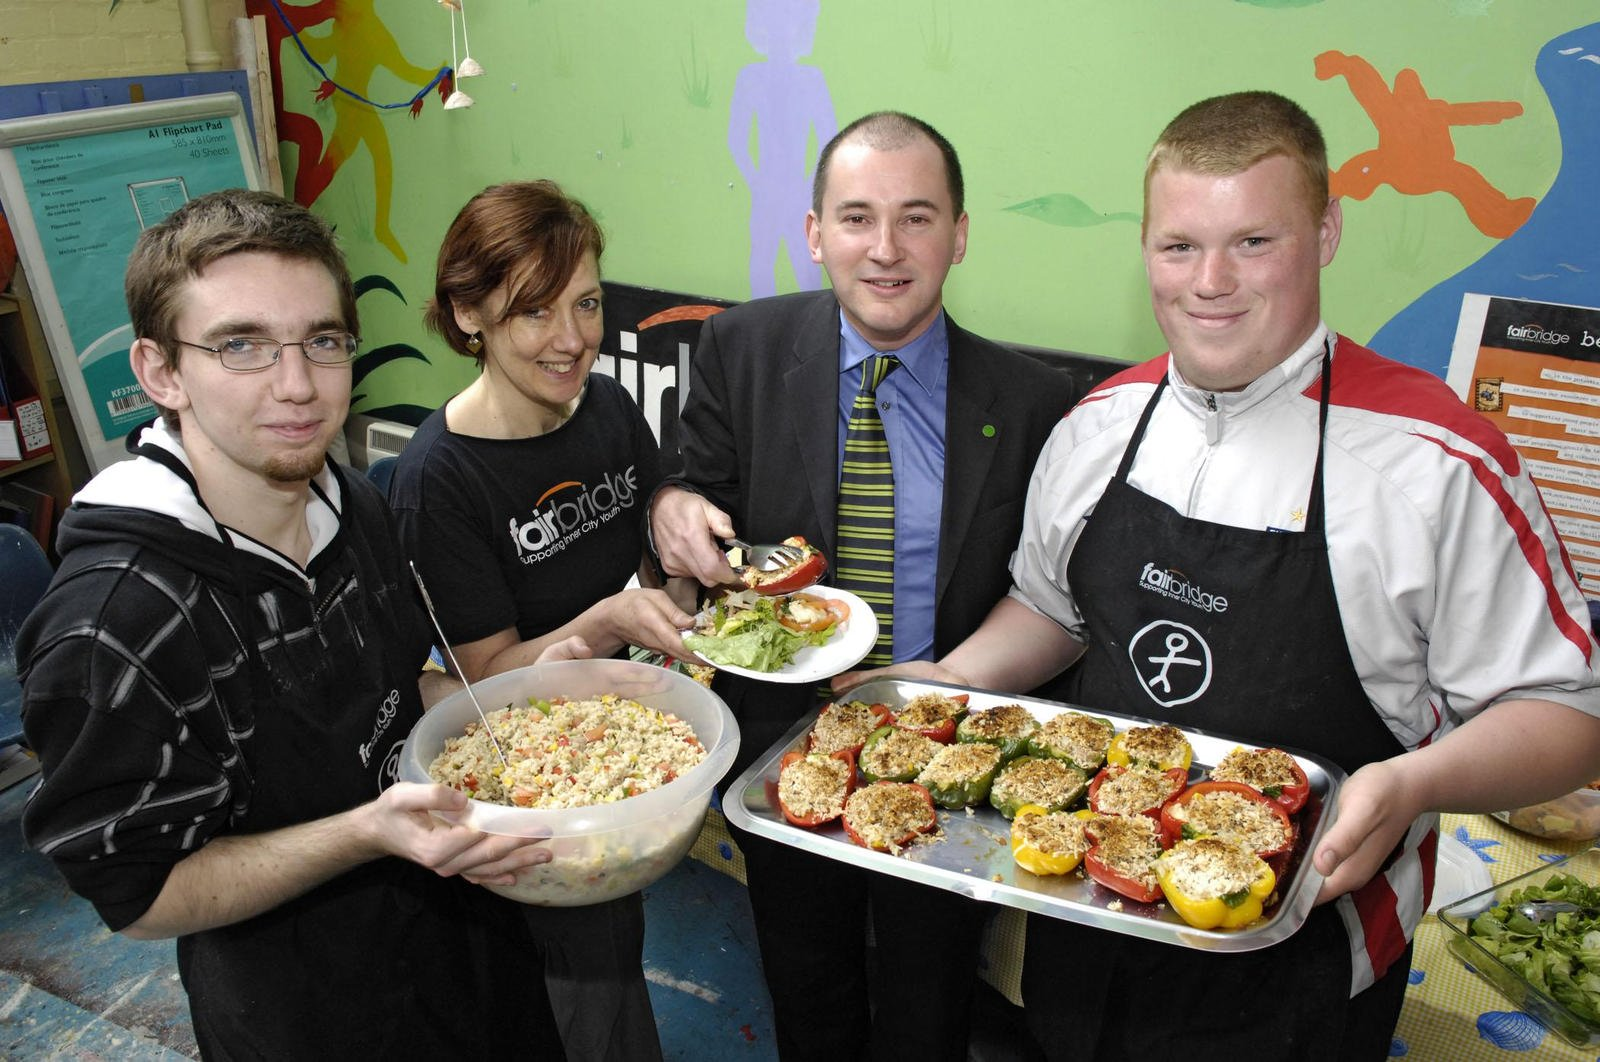 stephen-williams-mp-eating-healthily-with-young-pe.jpg